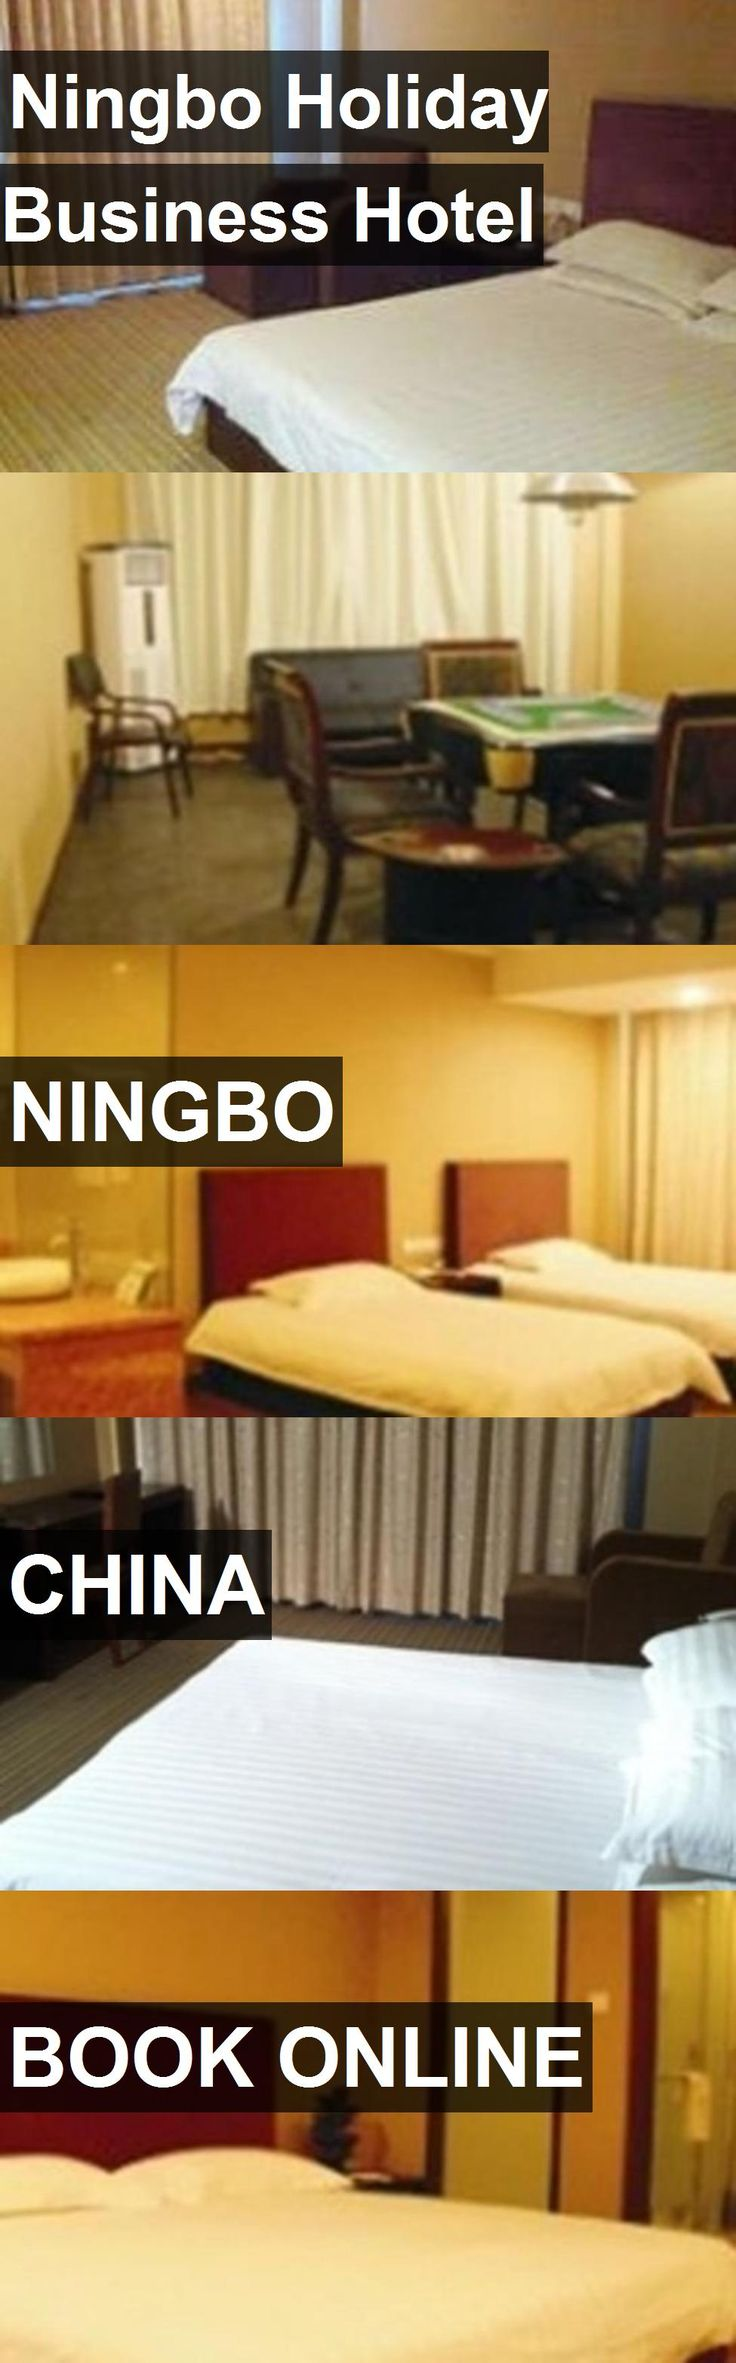 Hotel Ningbo Holiday Business Hotel in Ningbo, China. For more information, photos, reviews and best prices please follow the link. #China #Ningbo #NingboHolidayBusinessHotel #hotel #travel #vacation